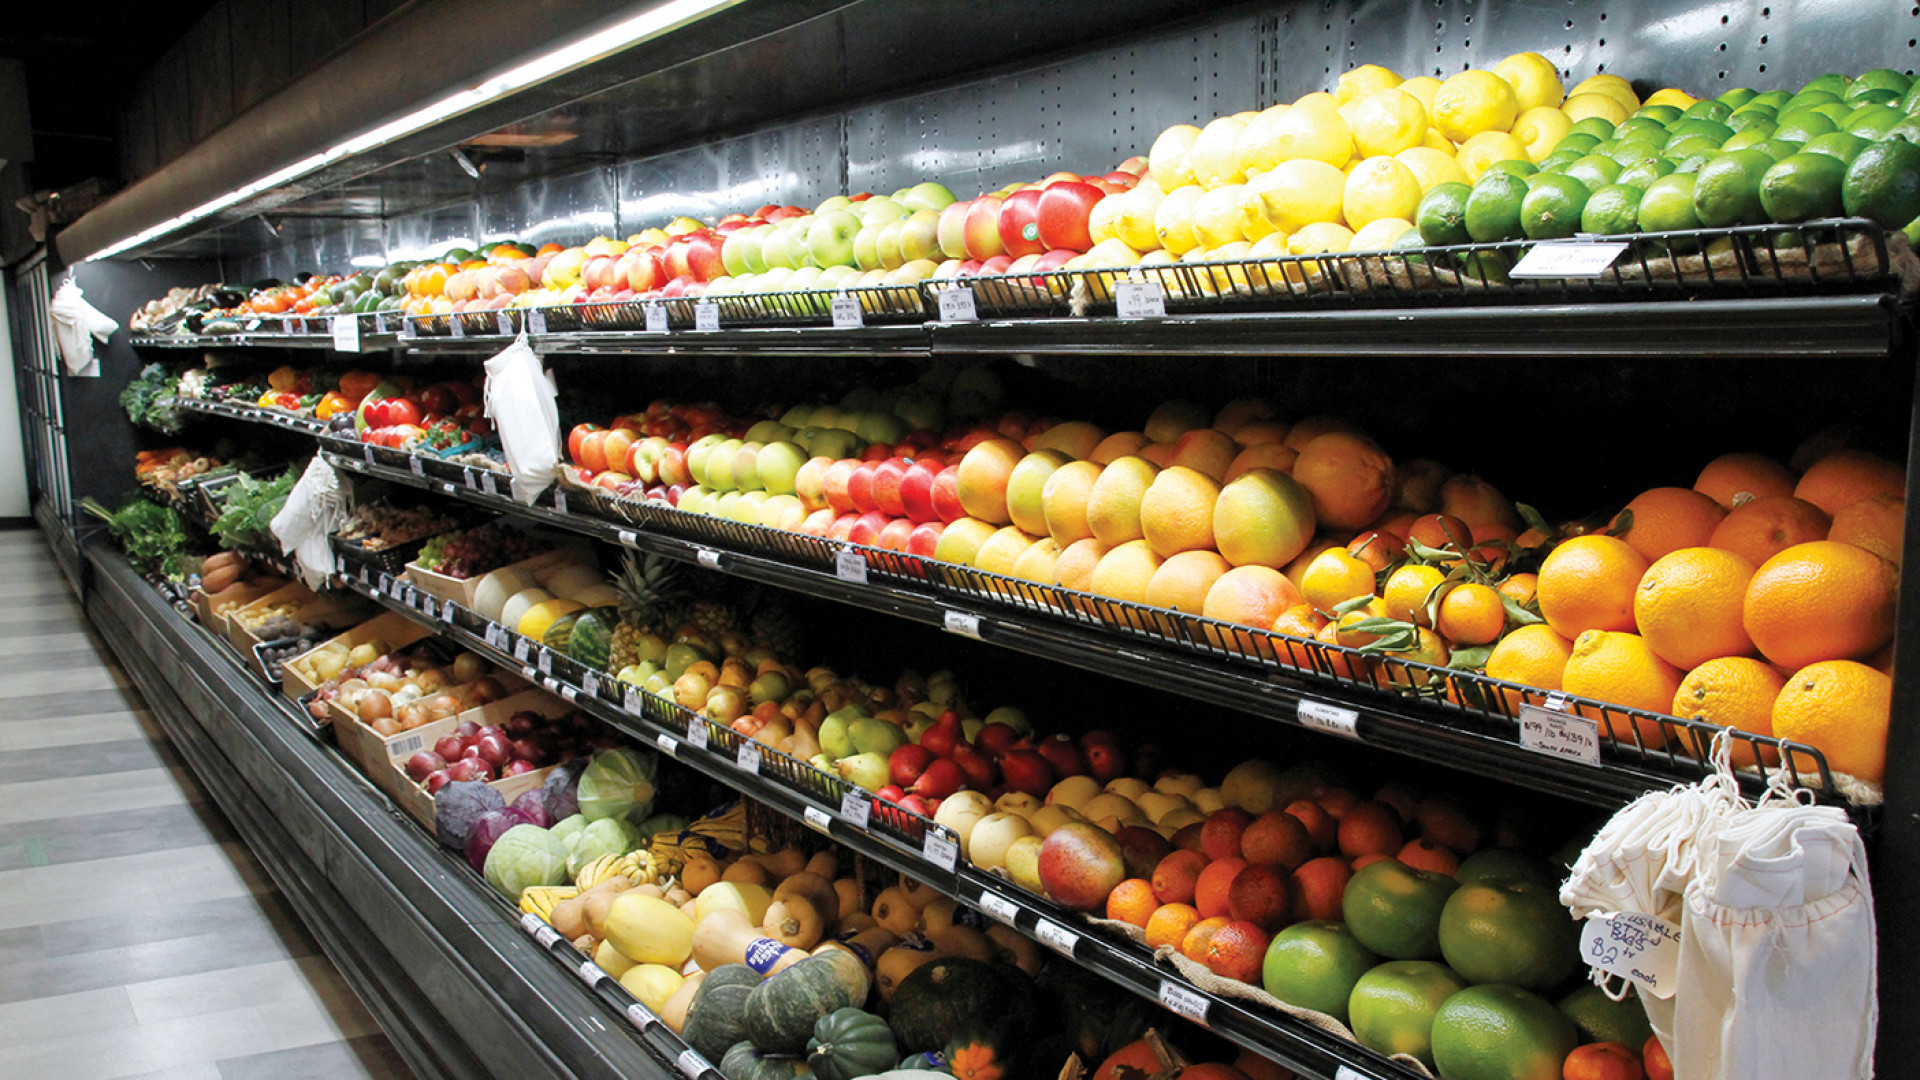 Unboxed Market, Zero waste grocery store and refillery | Produce is loose rather than being in plastic packaging